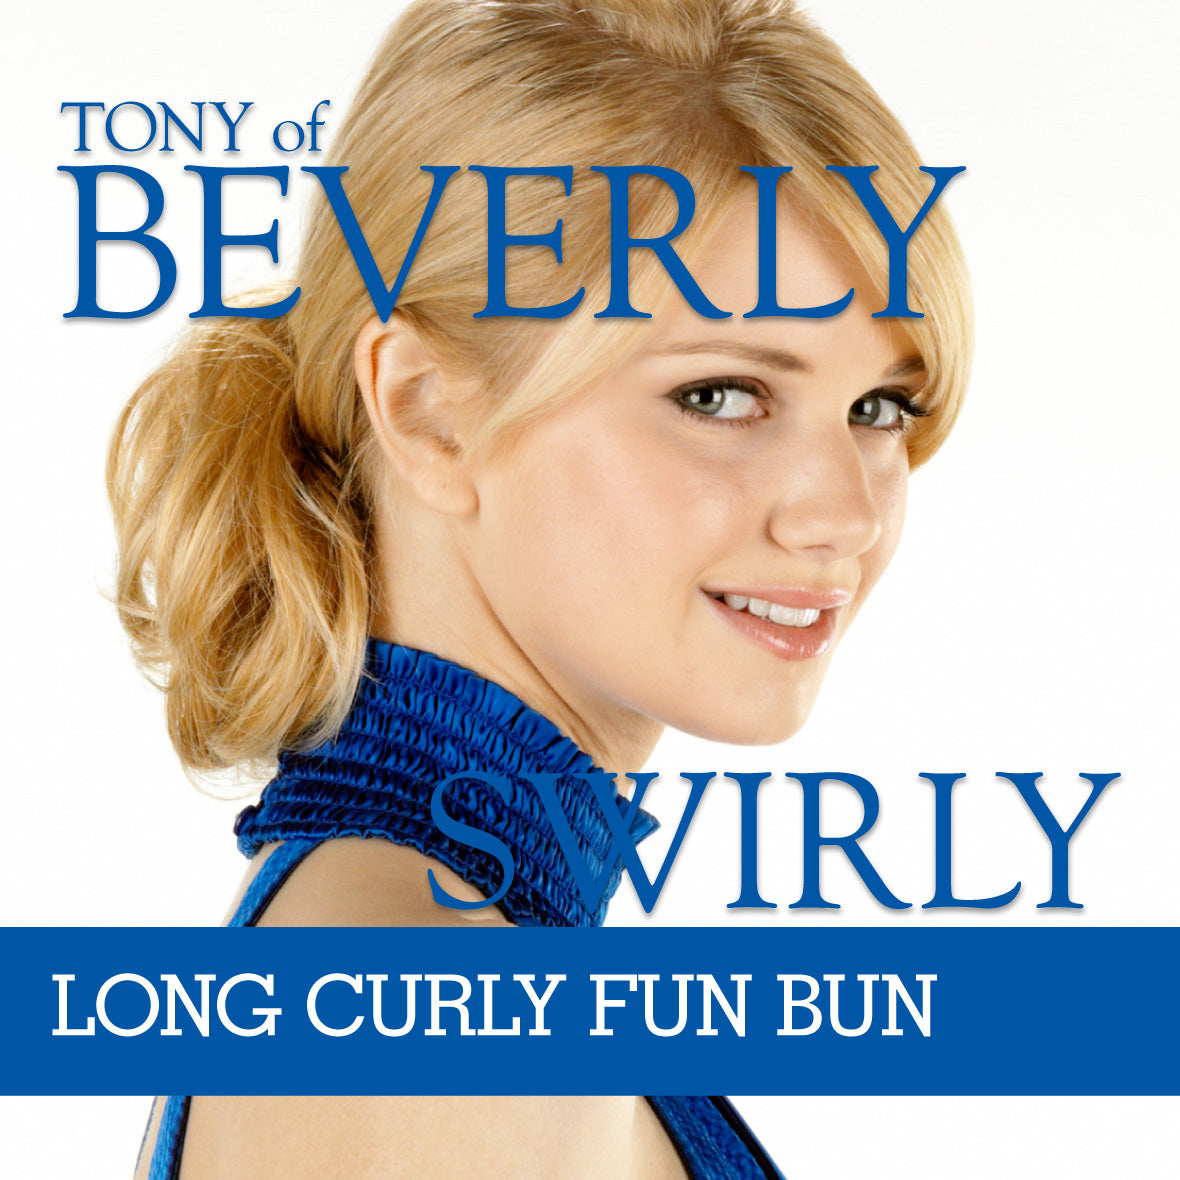 Abantu's Hairpieces coollection includes the fun and flirty Tony of Beverly Swirly